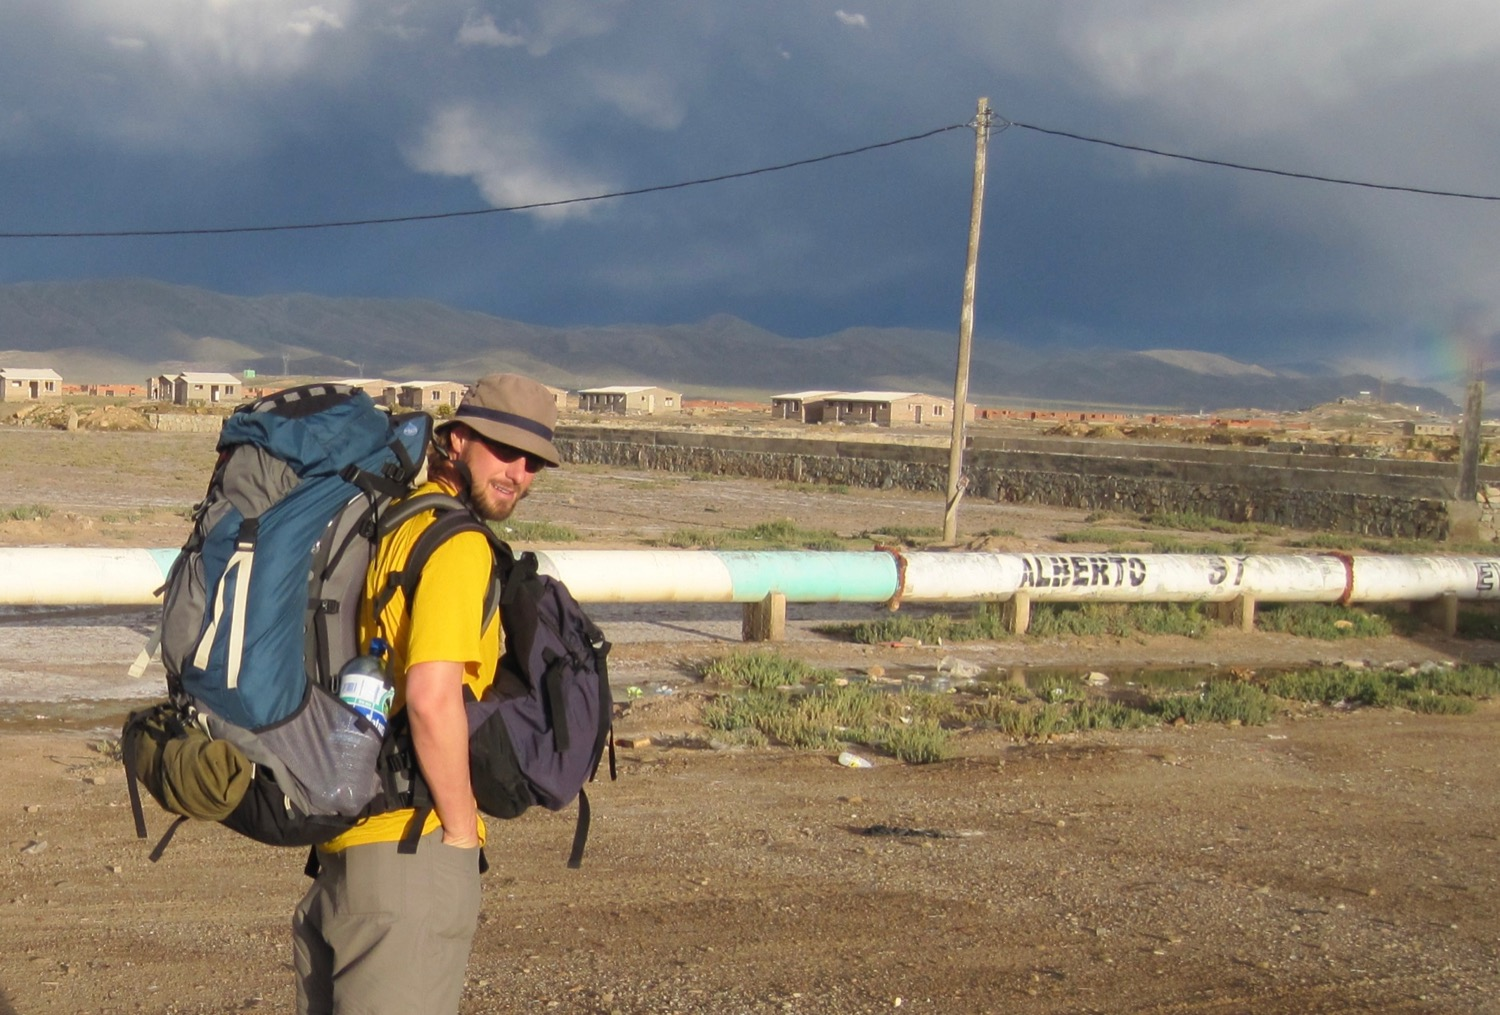 Hitting the road in Bolivia (2010)